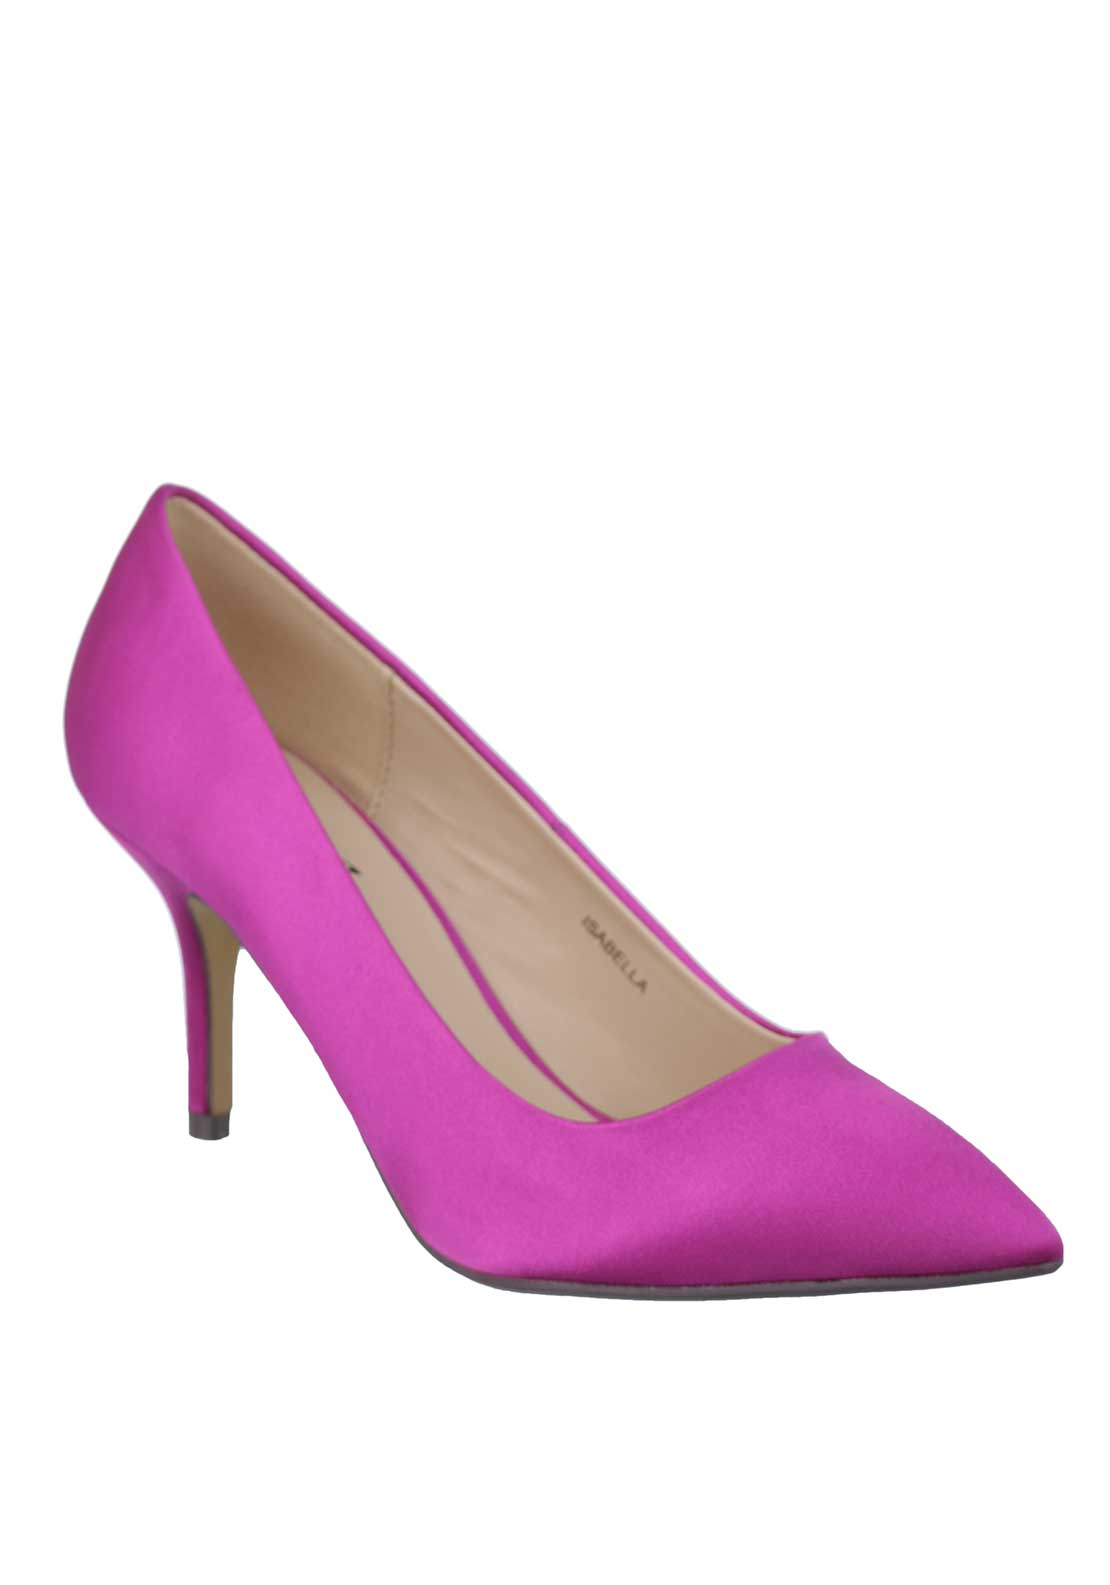 Lunar Isabella Satin Pointed Toe Court Shoes, Hot Pink